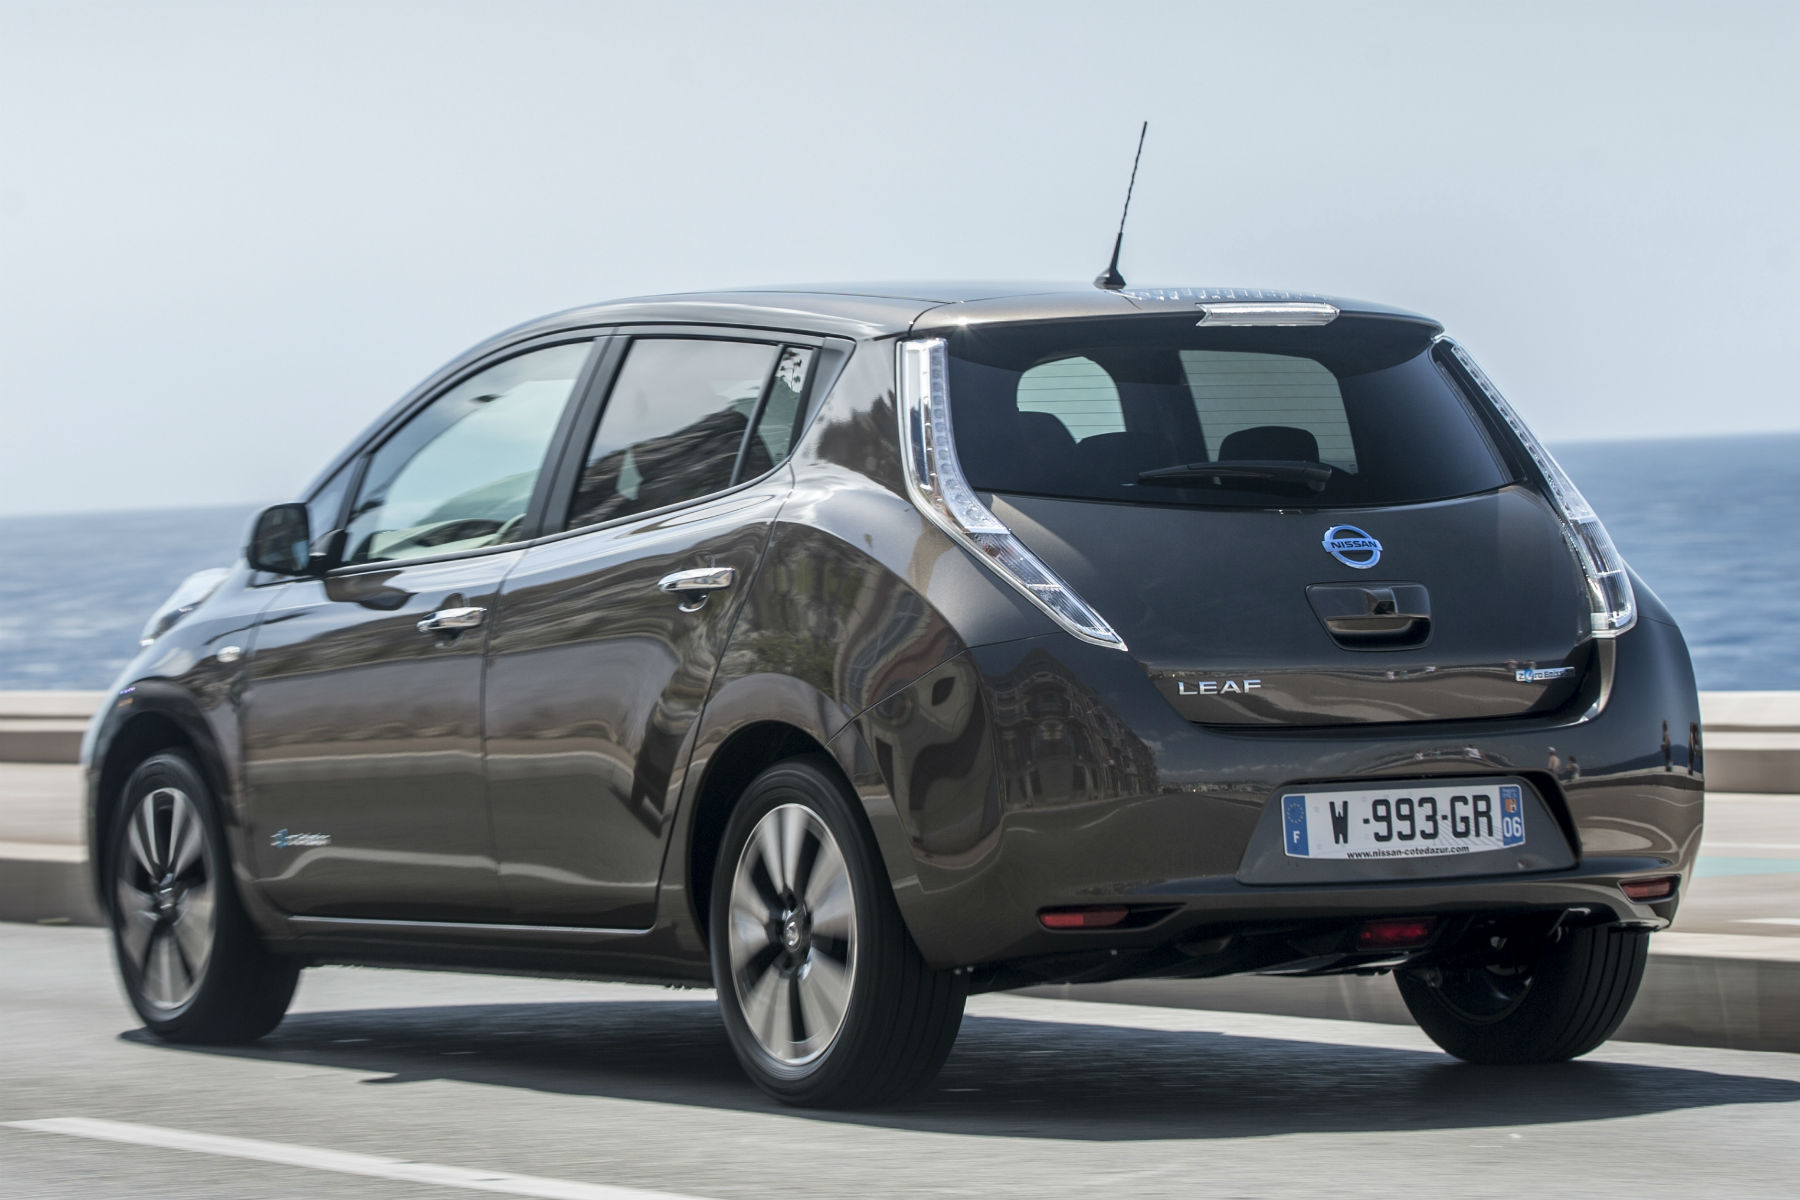 2015 Nissan Leaf 30kWh review: On the road